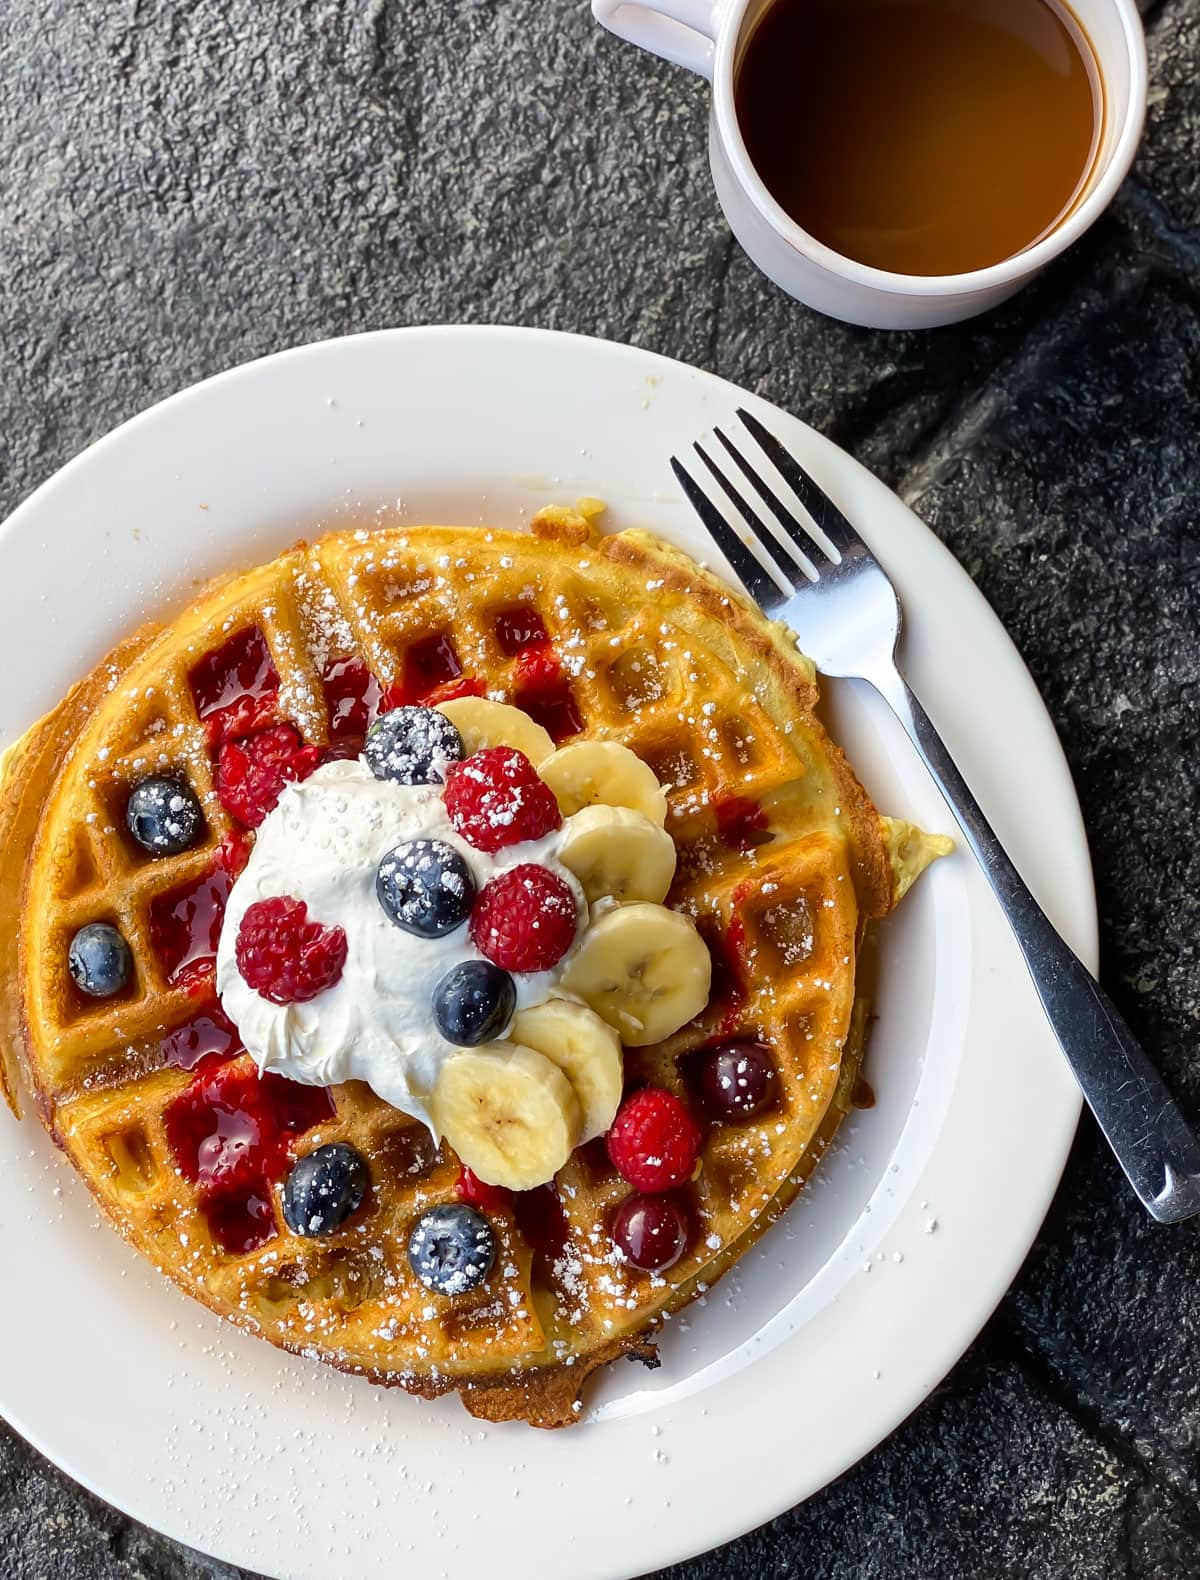 A waffle on a plate with fresh fruit and whipped cream